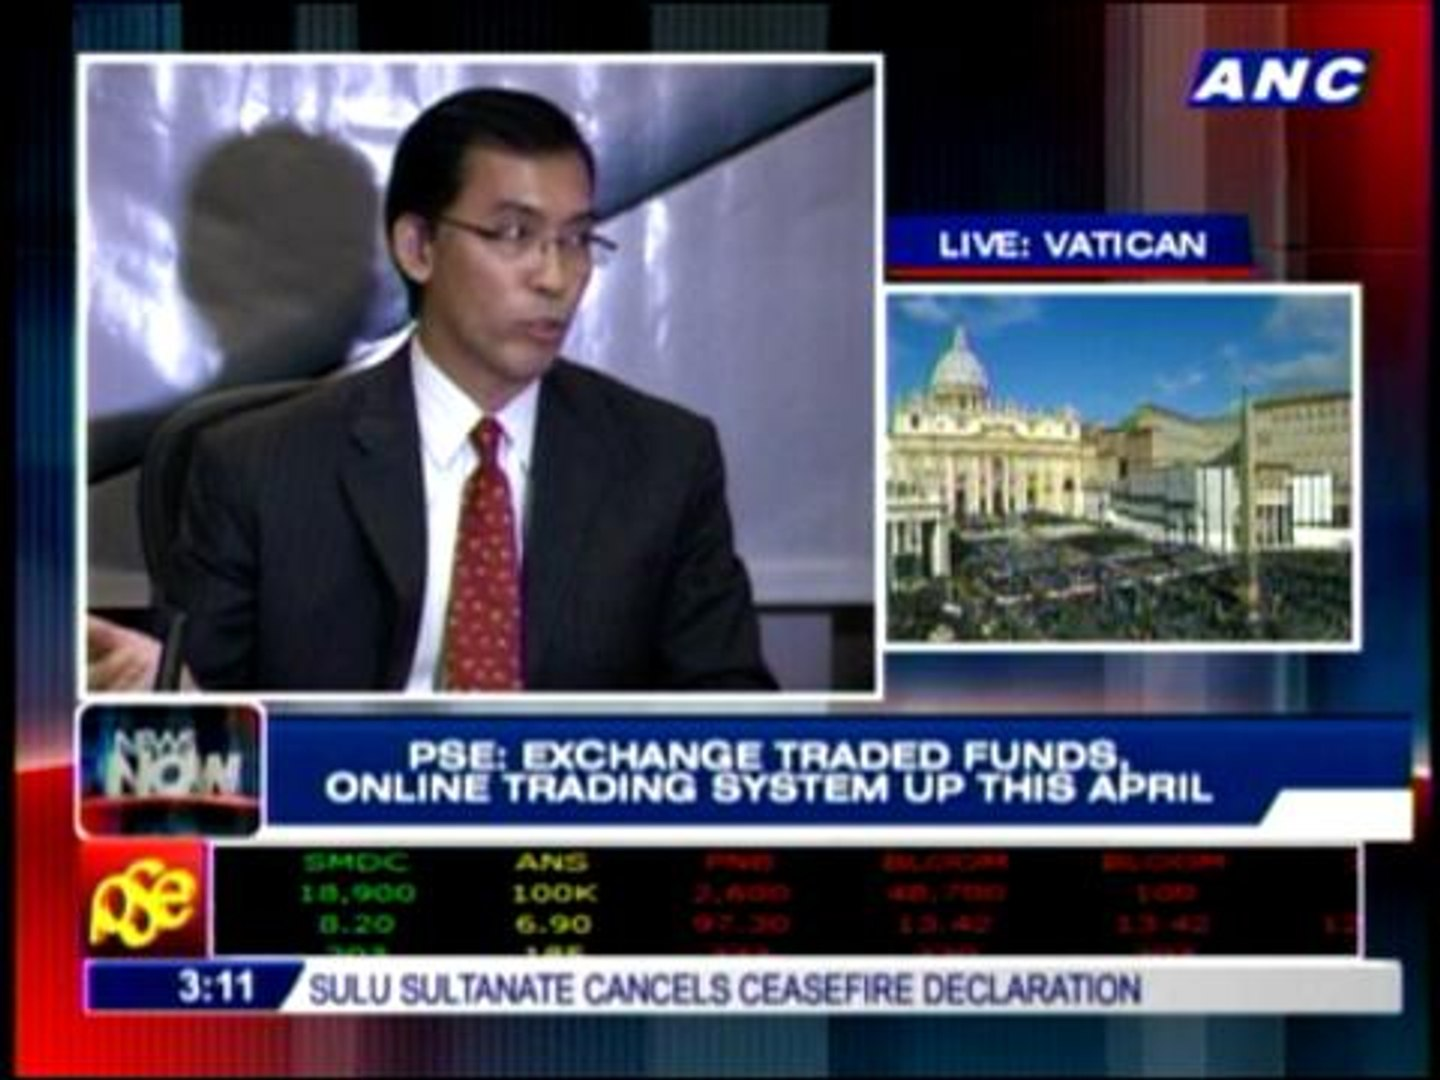 PSE Trading System